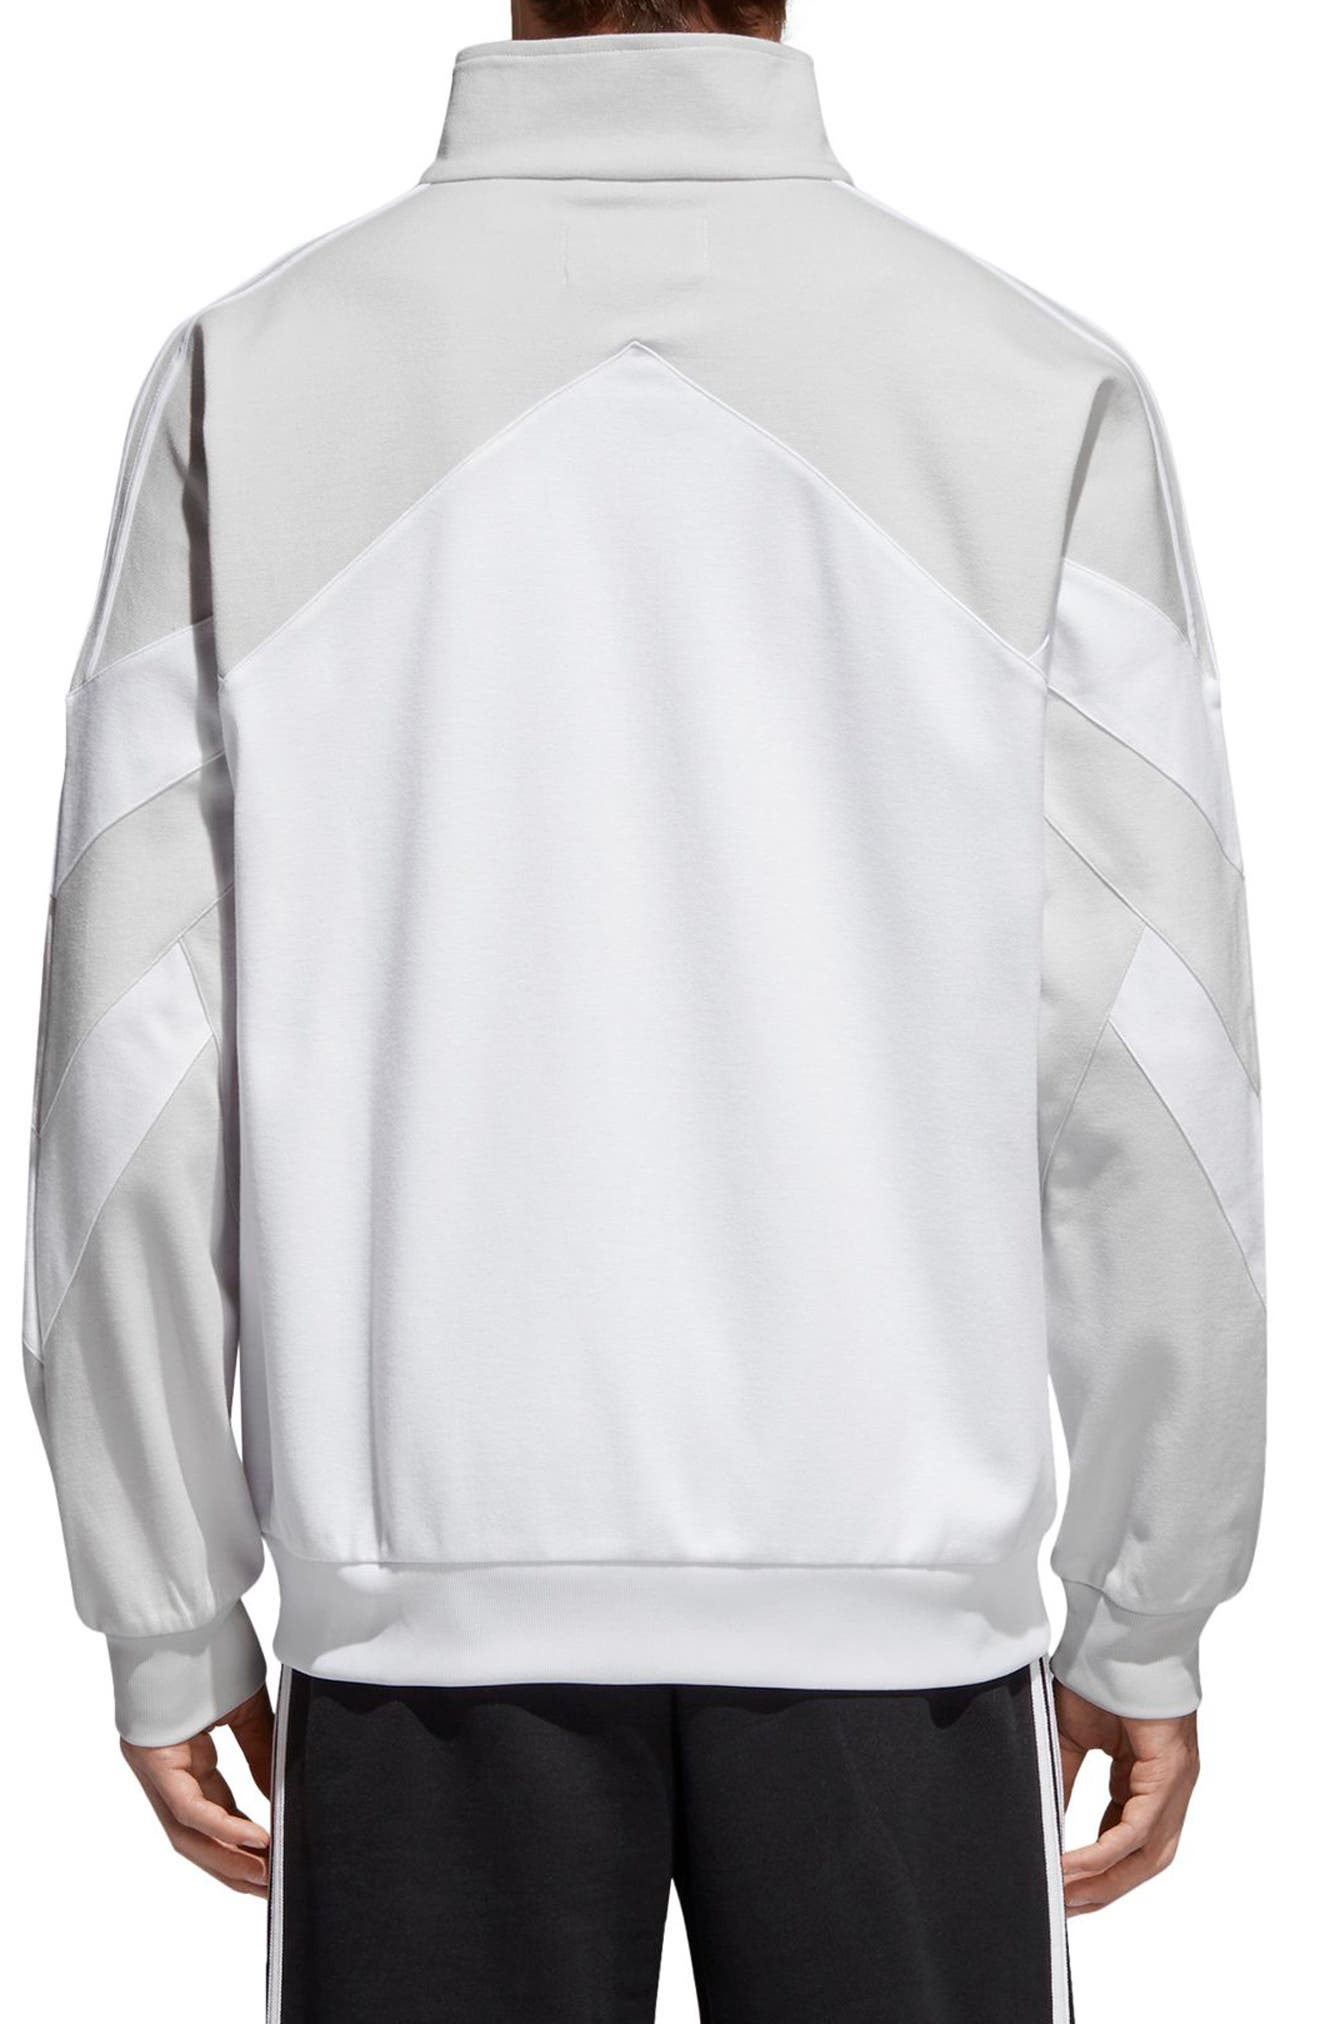 Palmeston Track Jacket,                             Alternate thumbnail 2, color,                             White